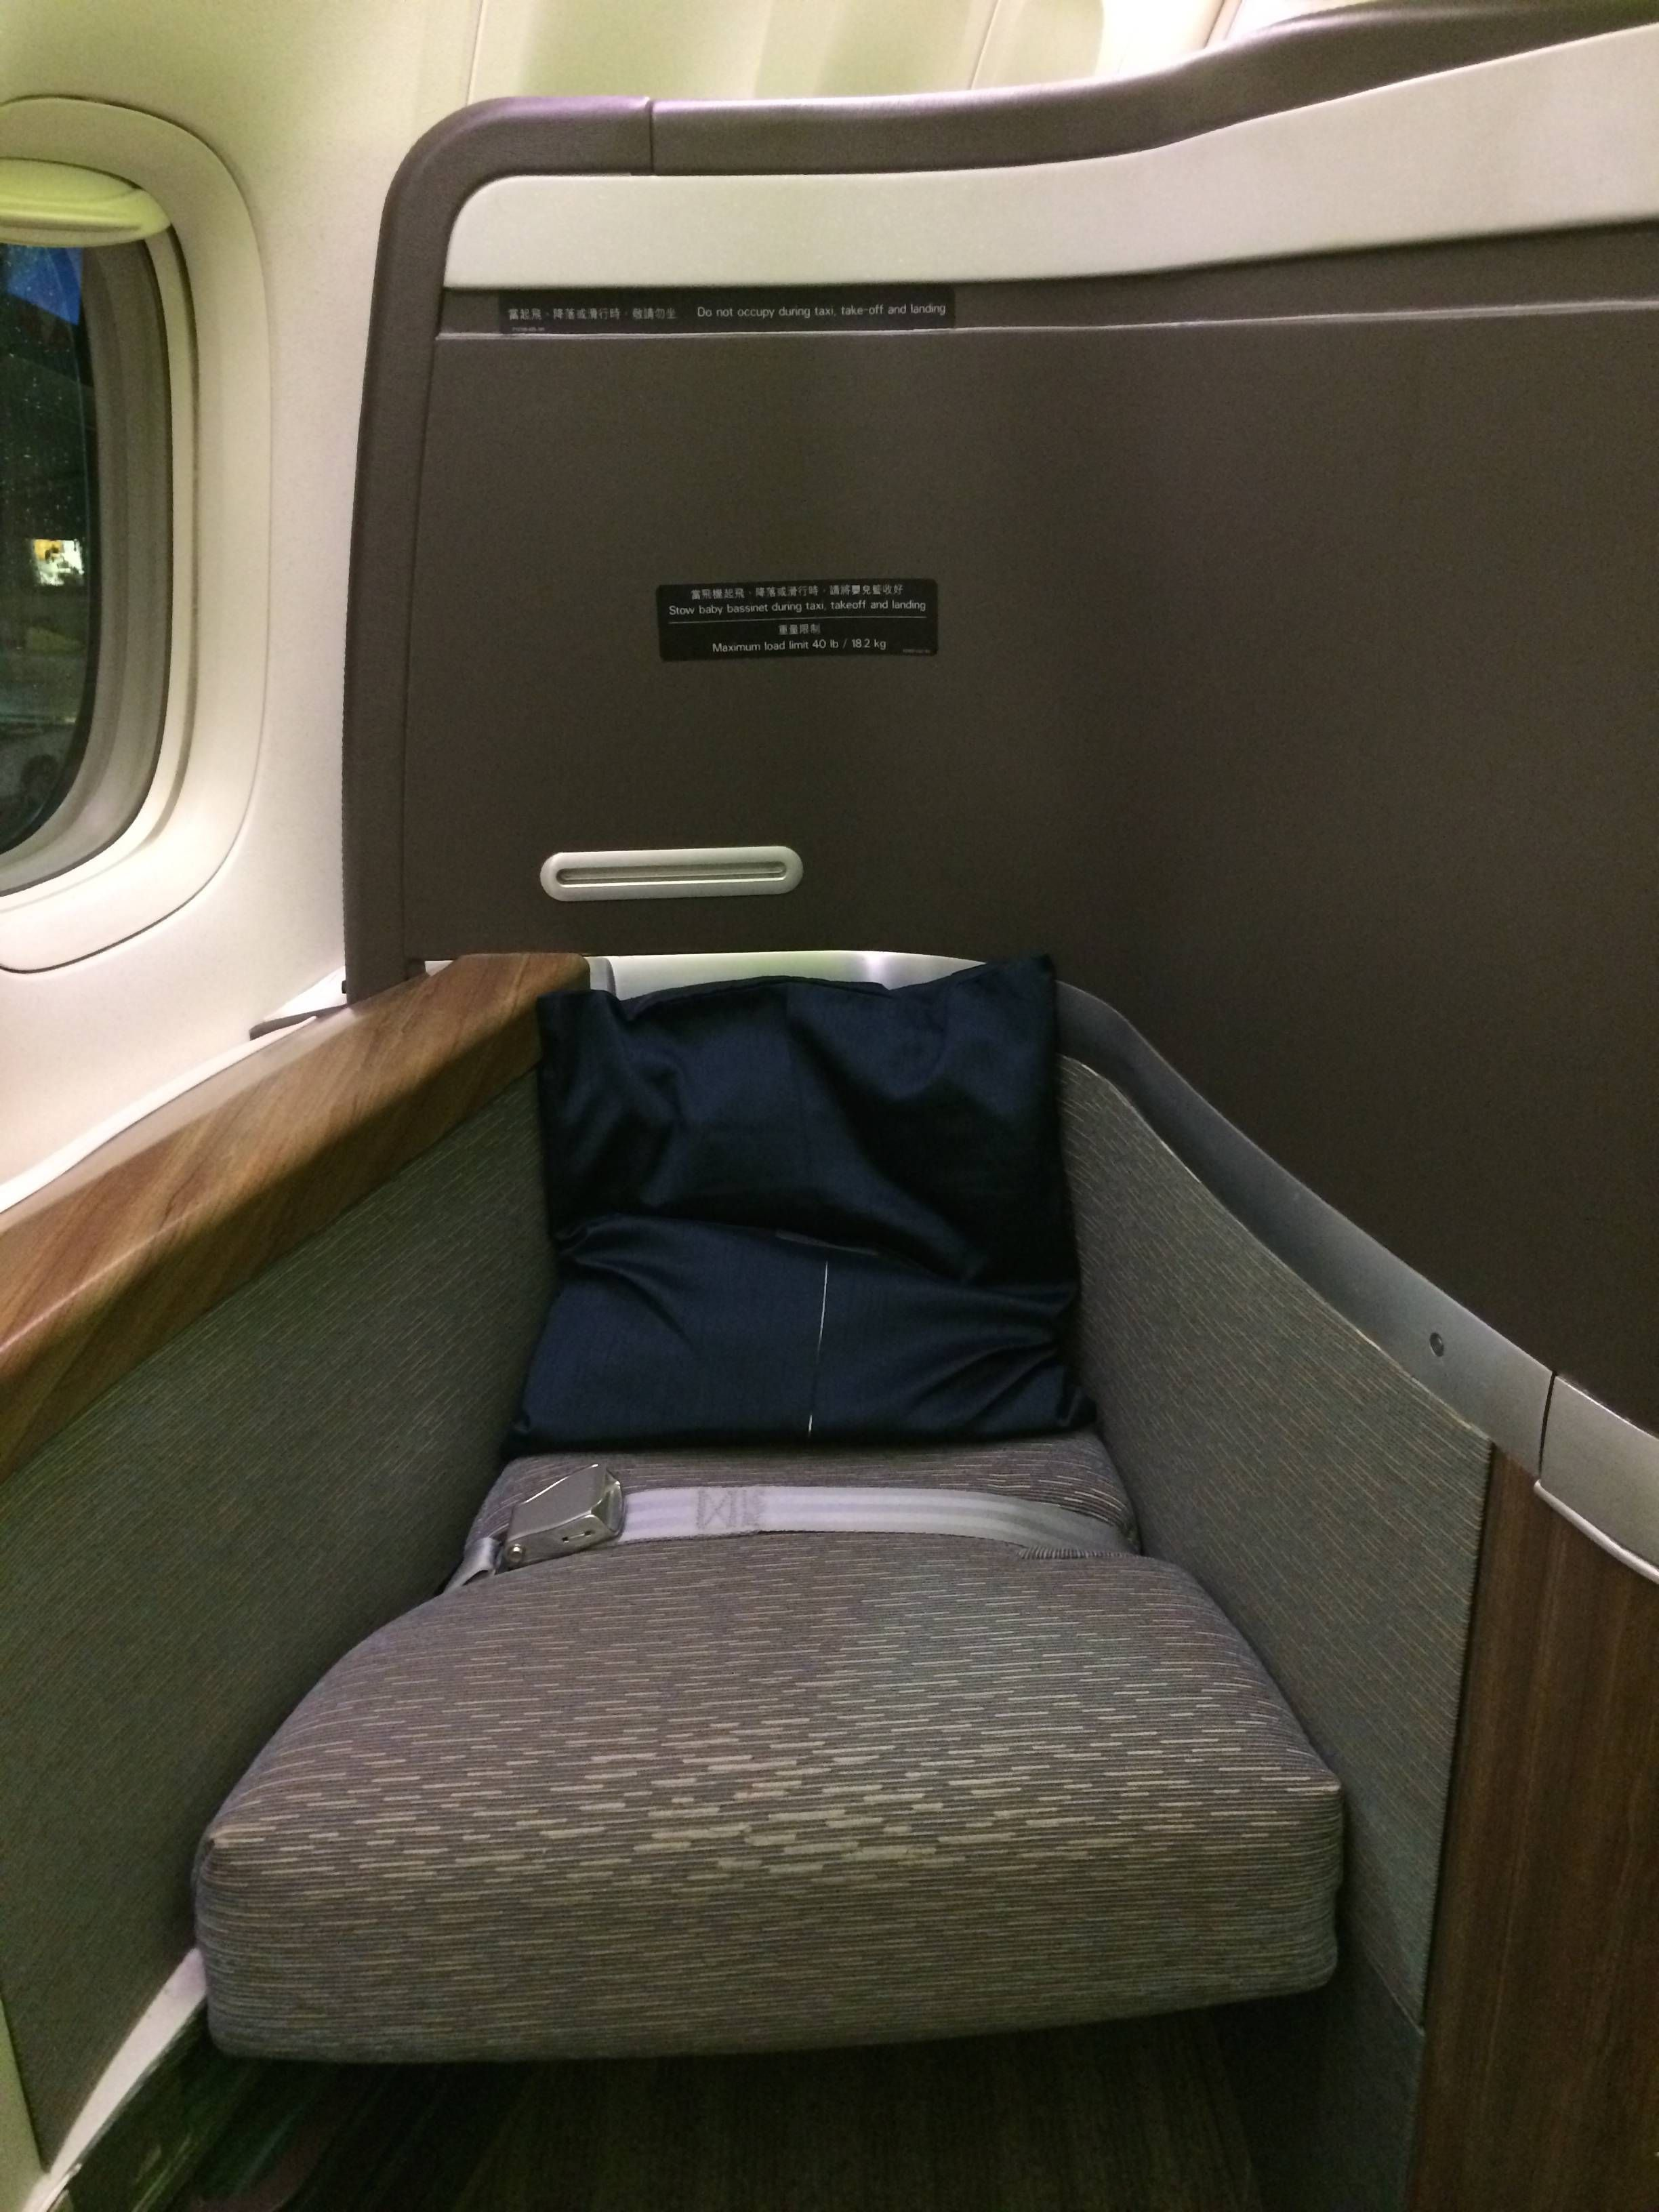 cathay pacific first class b777-300er primeira classe